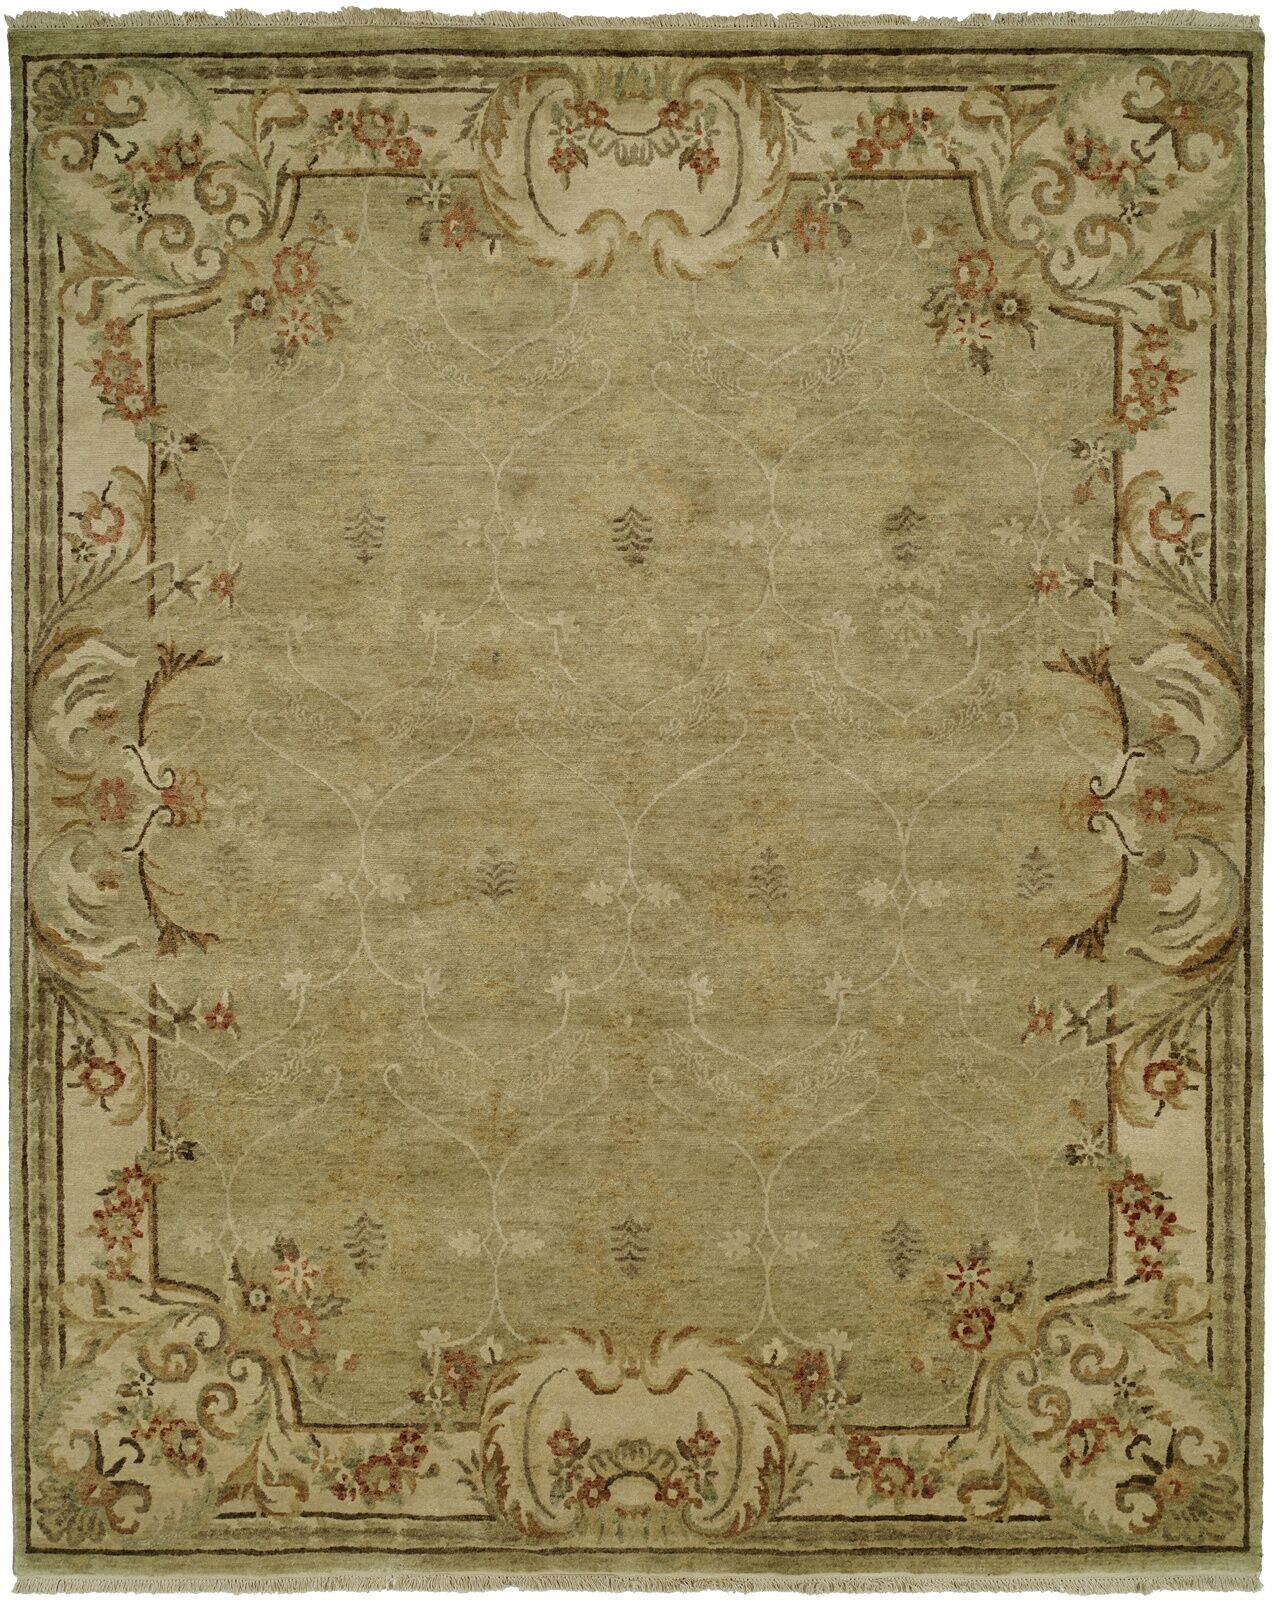 Marwood Hand Knotted Wool Green/Ivory Area Rug Rug Size: Rectangle 11' x 16'